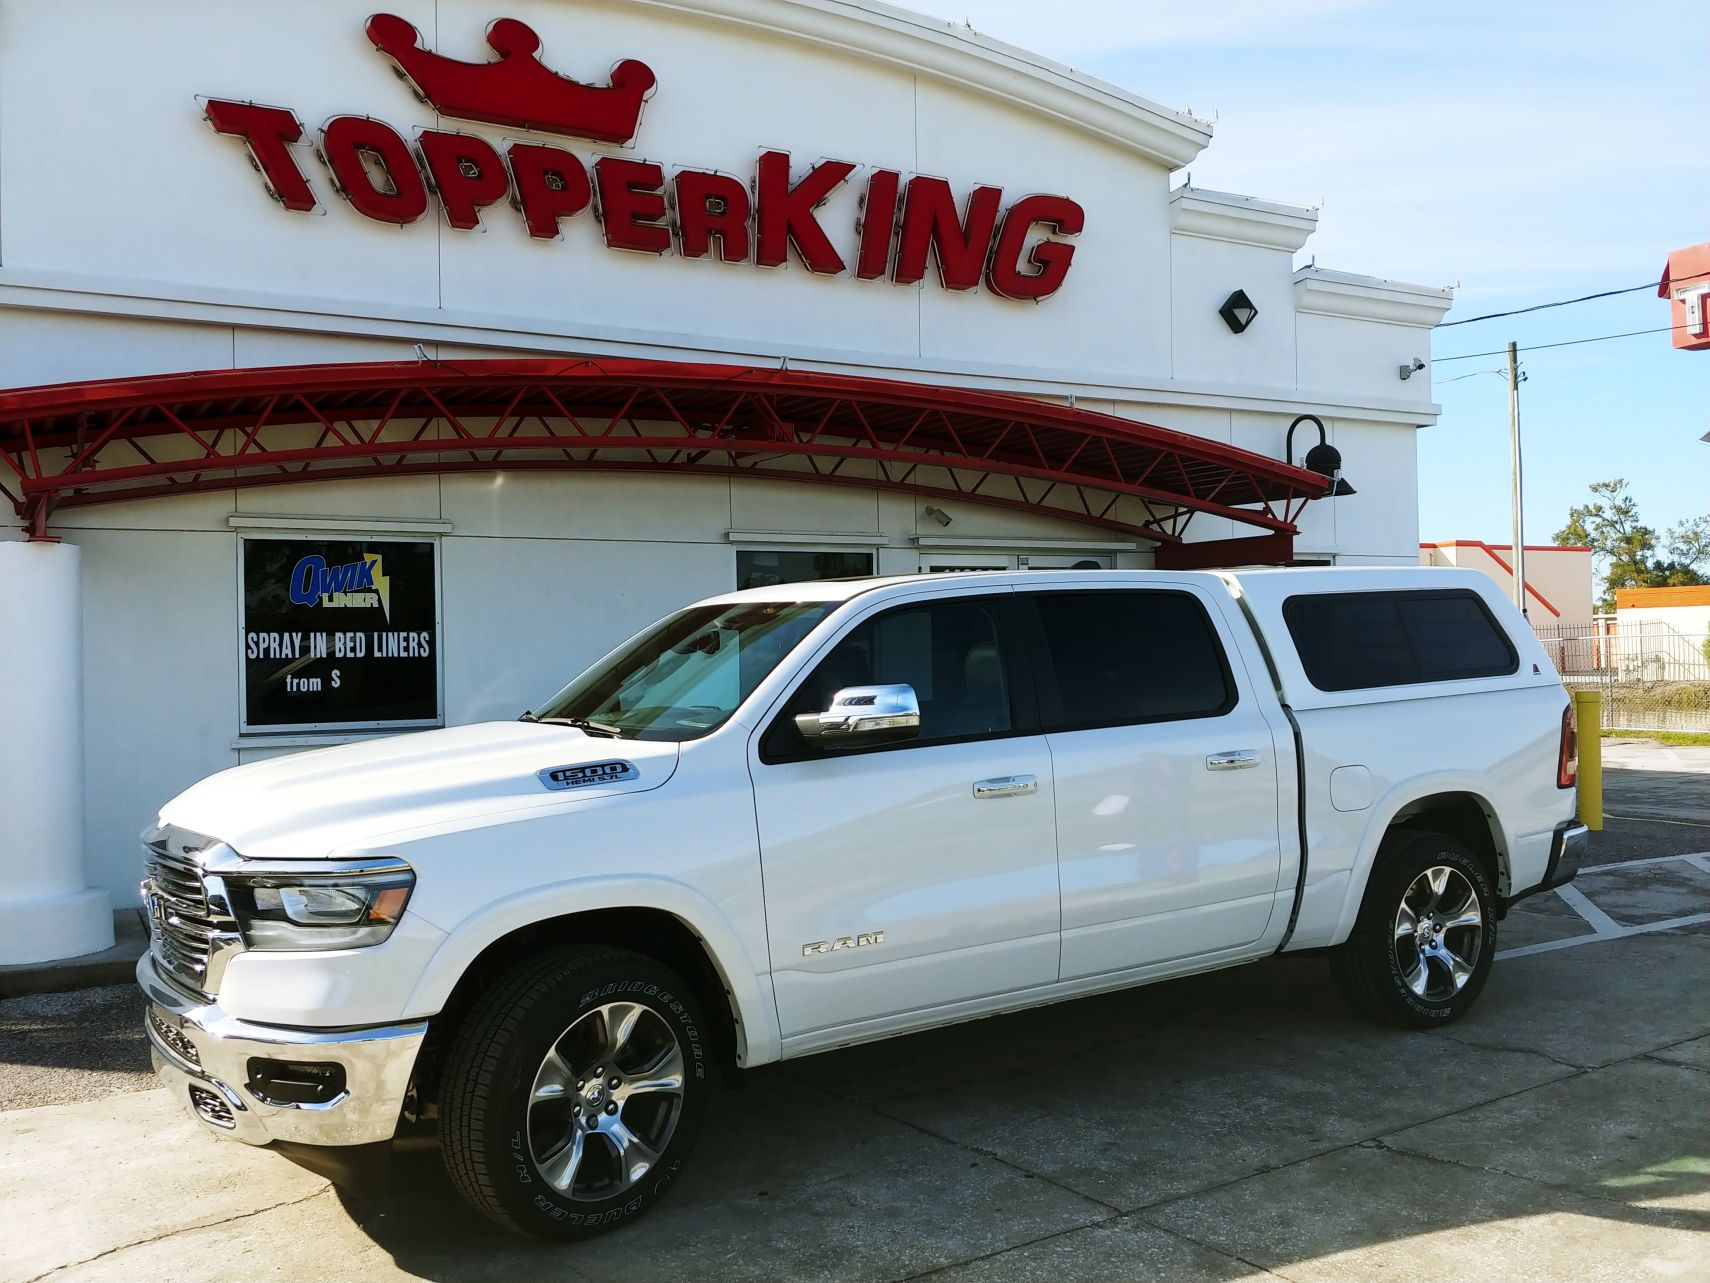 2019 White Dodge Ram 1500 LEER 100R, Custom Hitch, Chrome Accessories, and Tint by TopperKING in Brandon, FL 813-689-2449 or Clearwater, FL 727-530-9066.